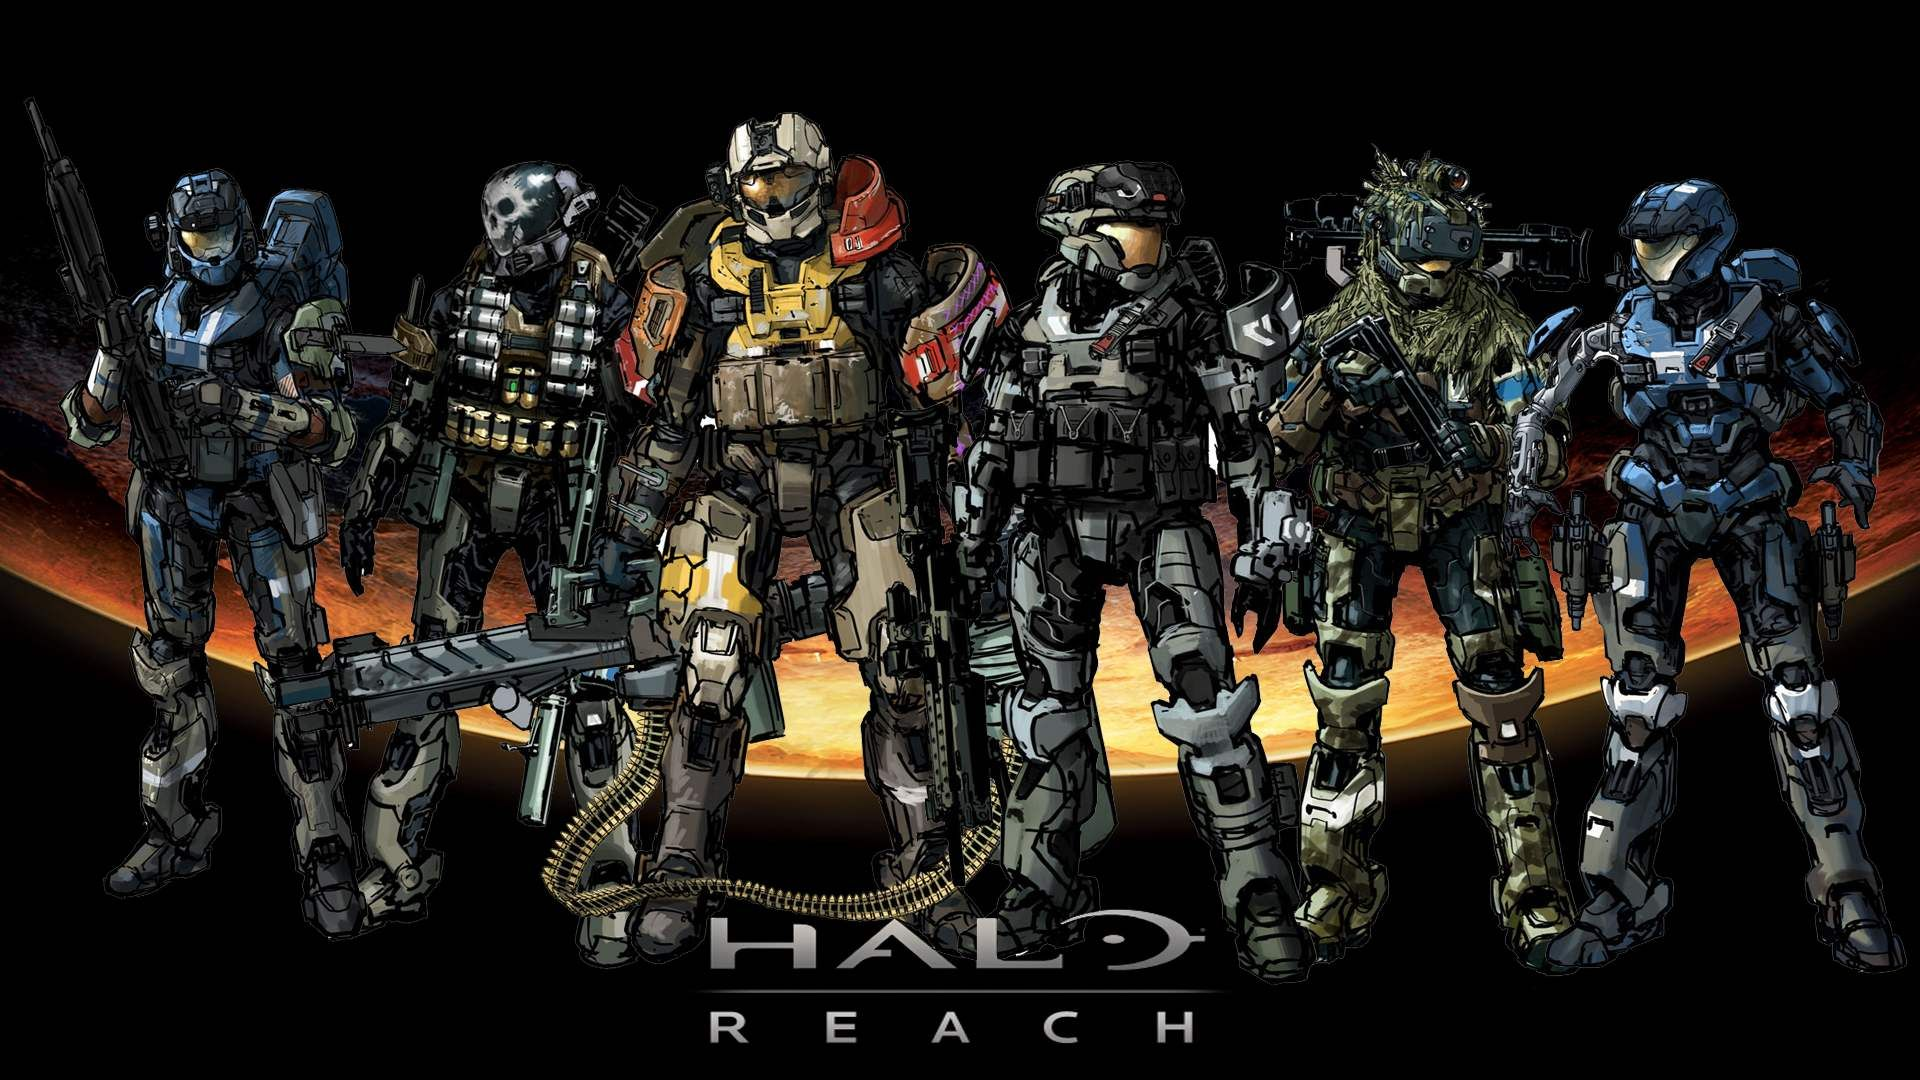 Halo Reach Wallpapers In Hd Halo Reach Halo Armor Halo Combat Evolved